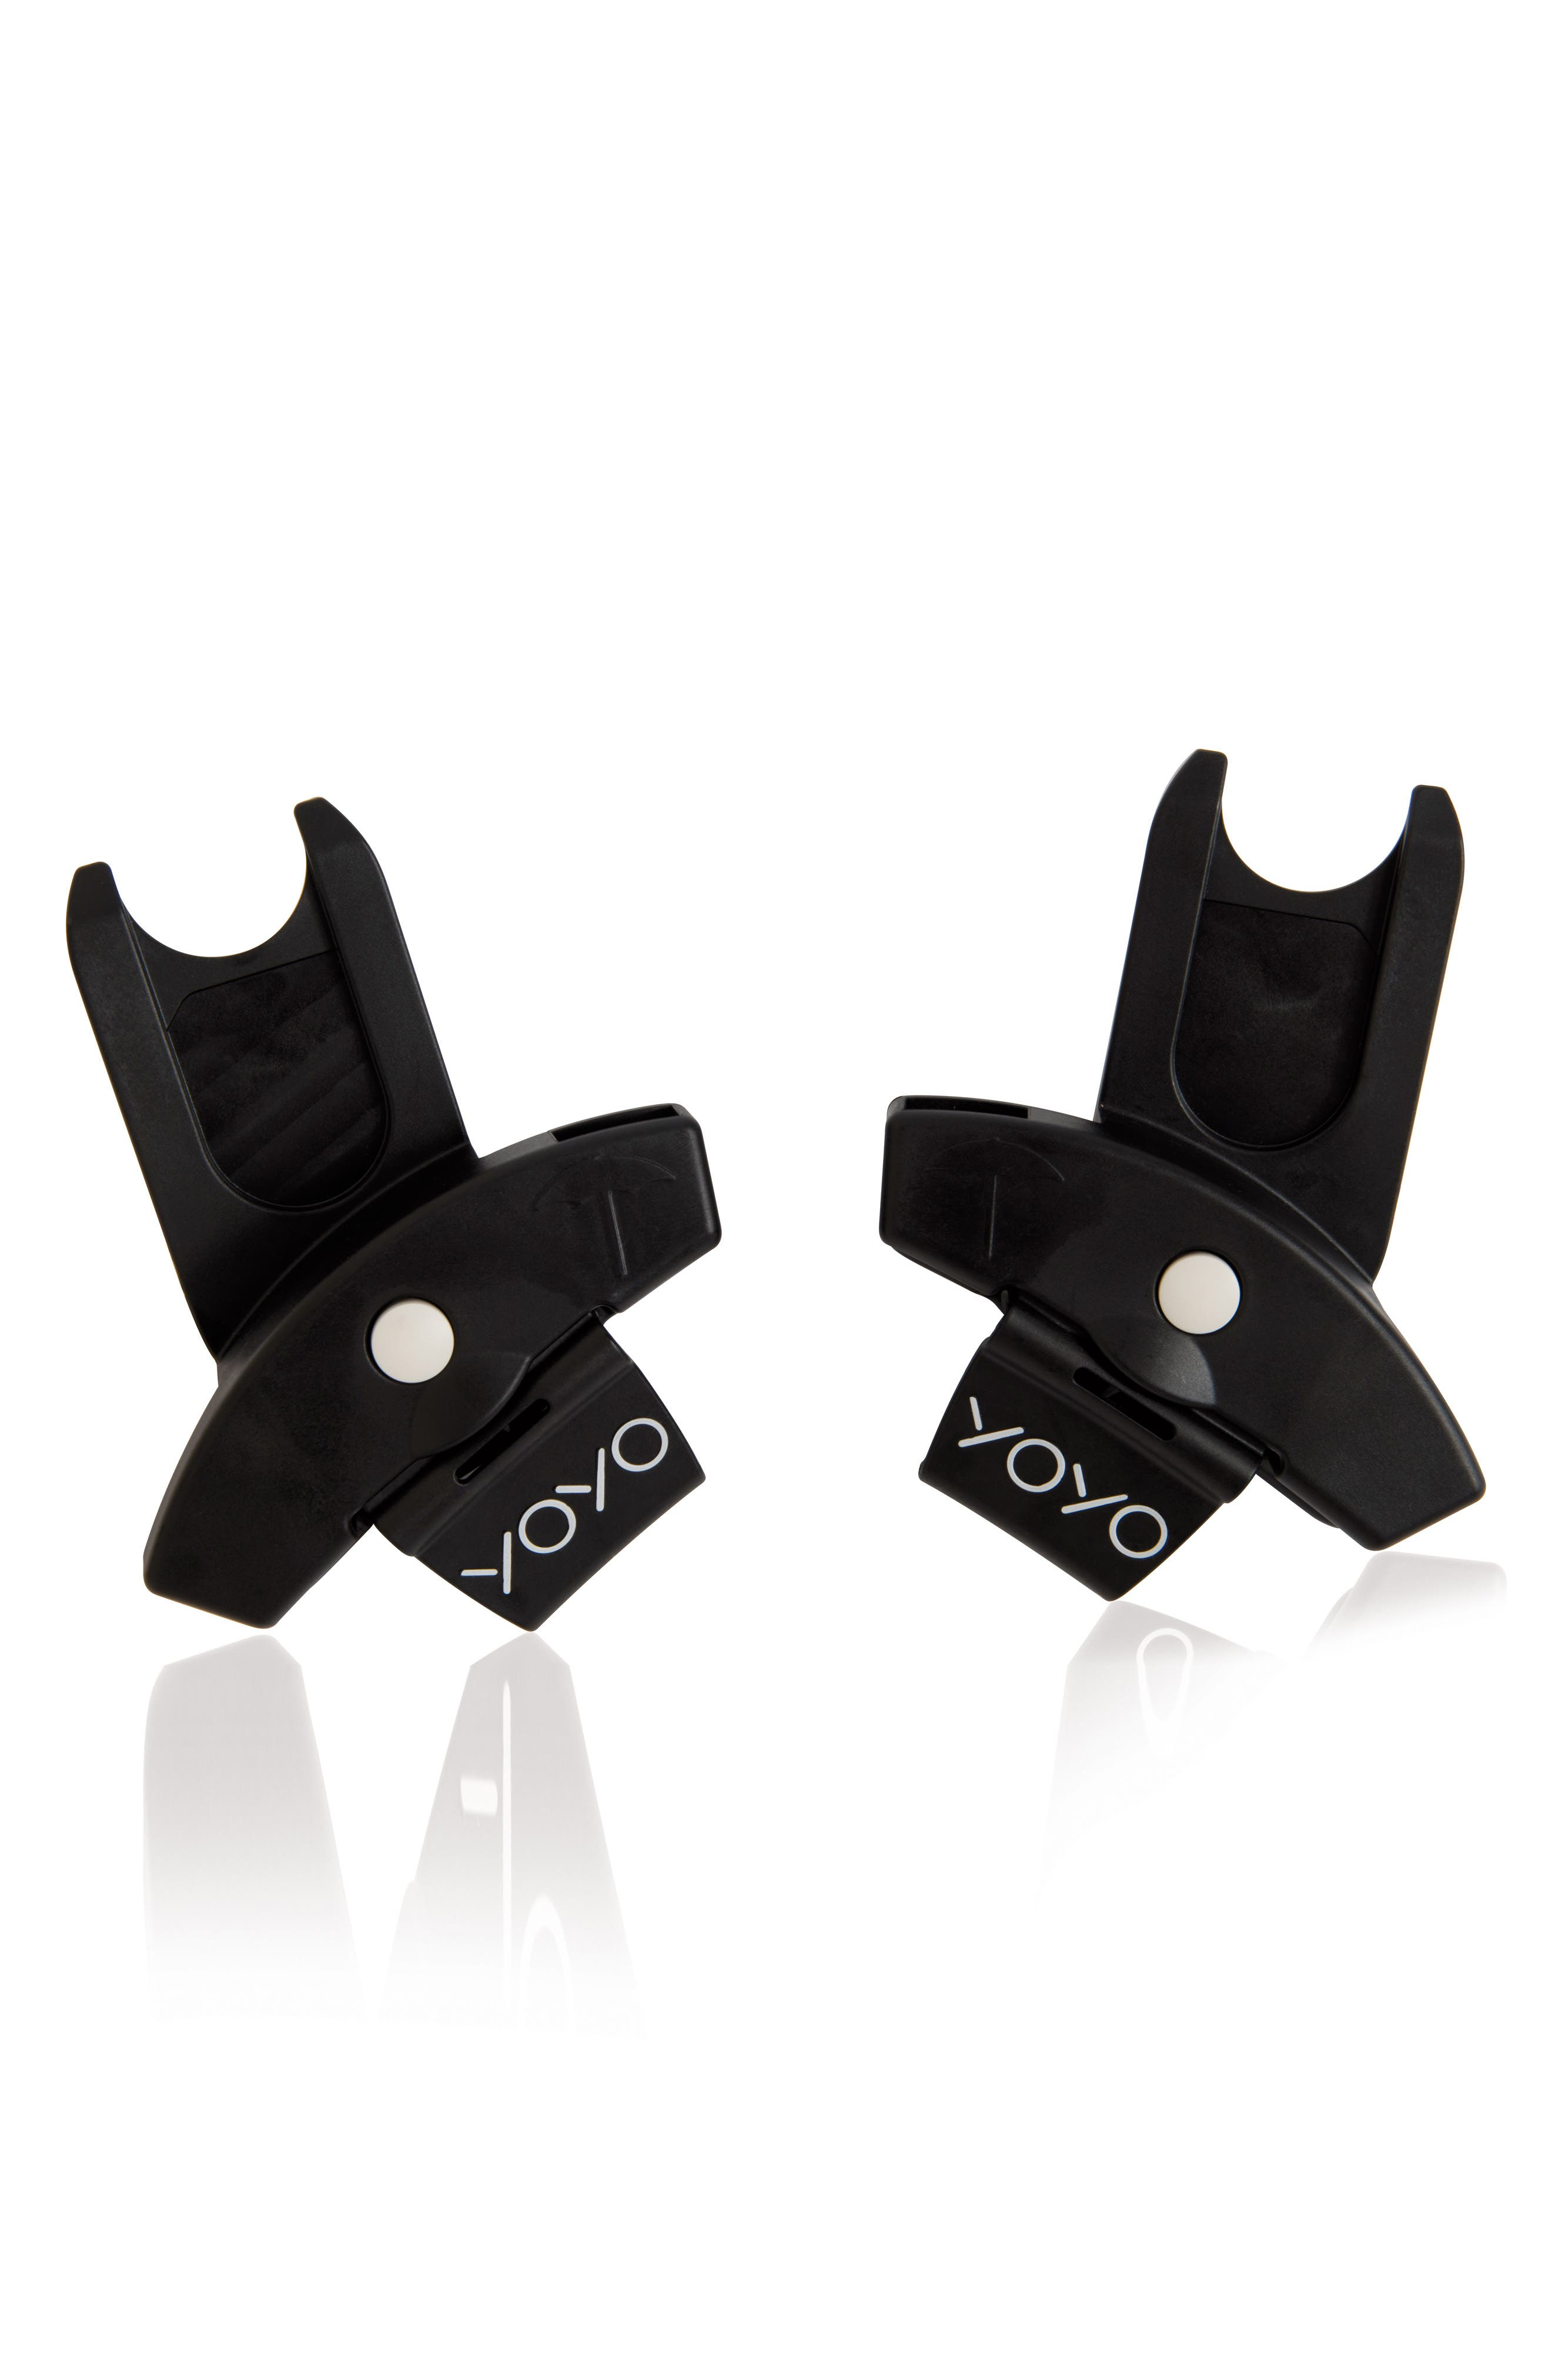 Babyzen Adapters for YOYO+ Stroller & Cybex, Nuna and Maxi-Cosi<sup>®</sup> Infant Car Seats,                             Main thumbnail 1, color,                             BLACK